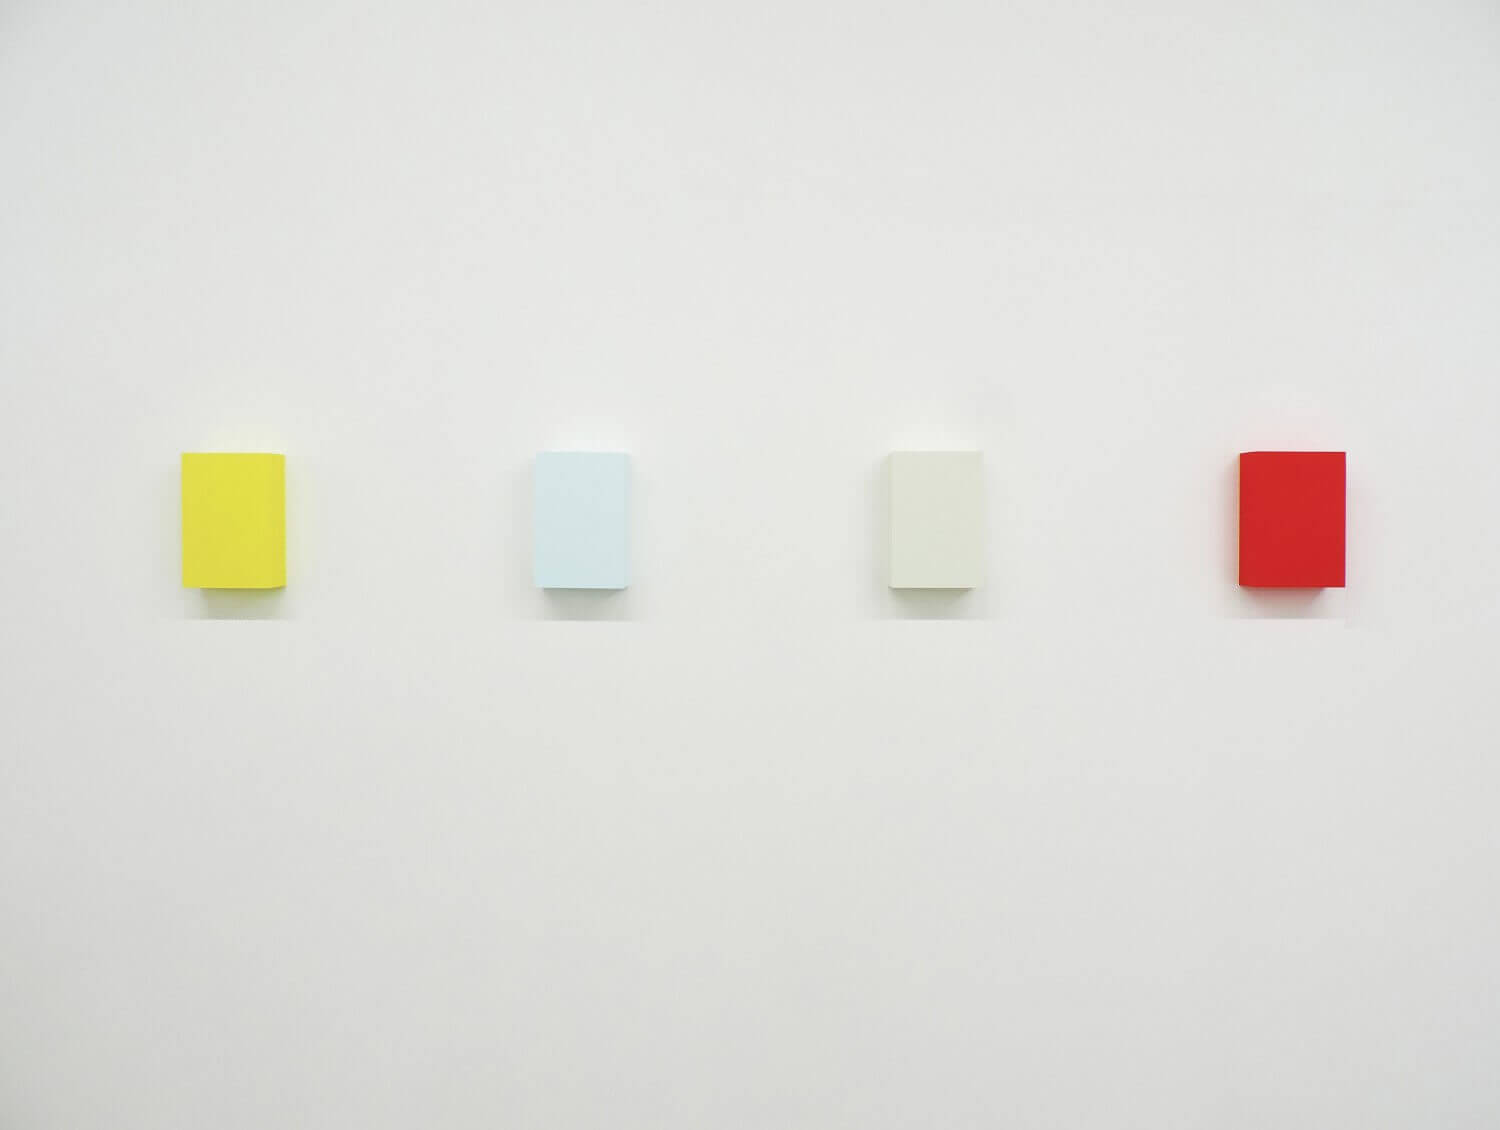 WORK16-7(lemon) / WORK16-4(light blue) / WORK16-6(ivory) / WORK16-2(red)